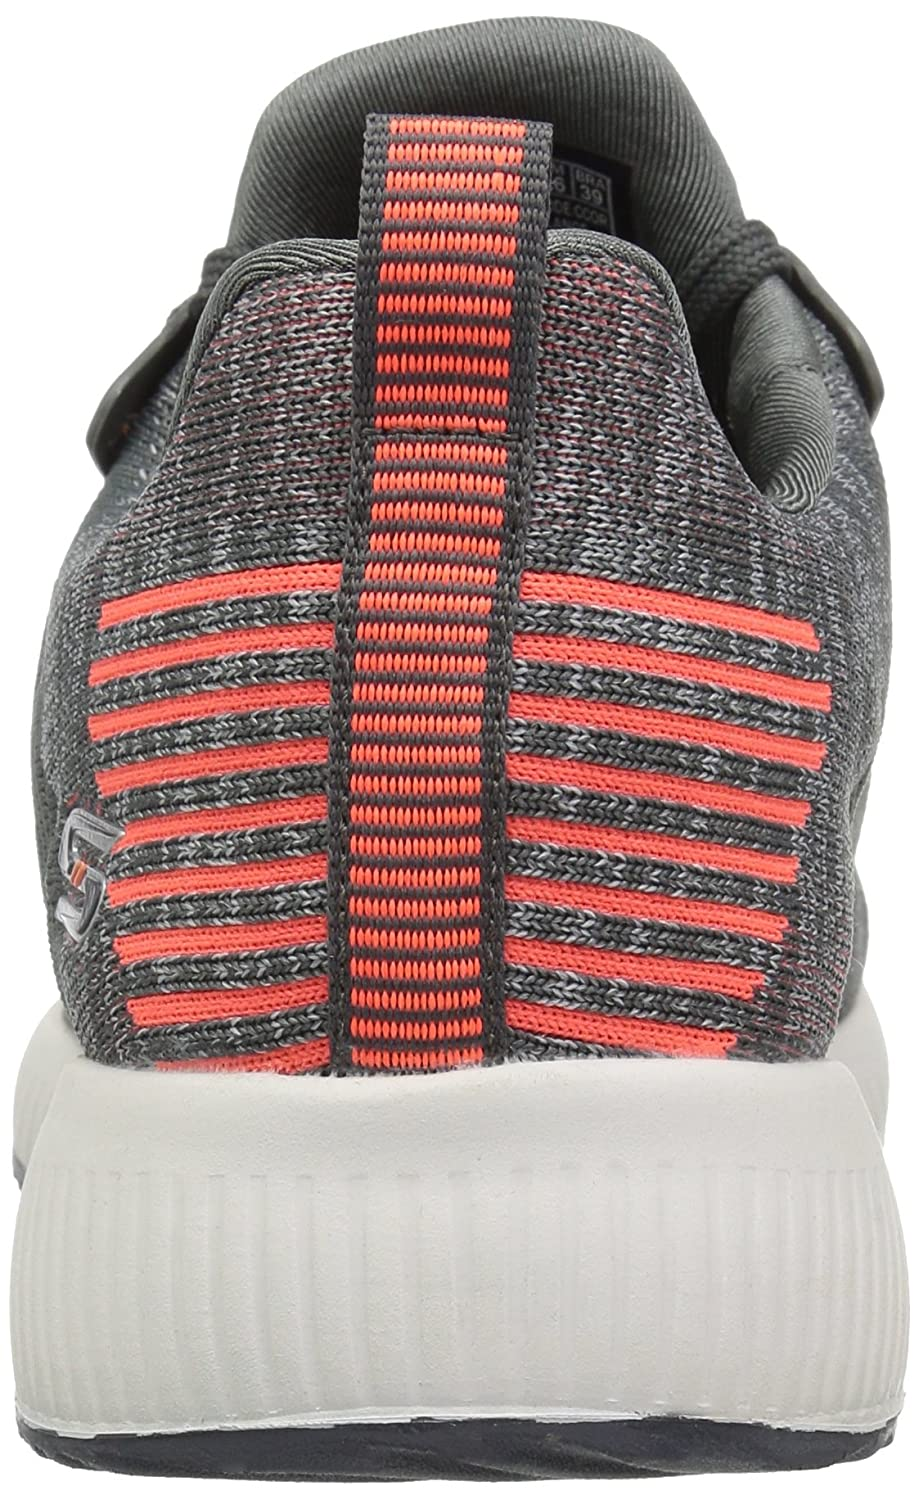 Skechers on Damen Bobs Squad-Double Dare Slip on Skechers Sneaker, Schwarz/Weißszlig; Charcoal Orange 6fc4fe